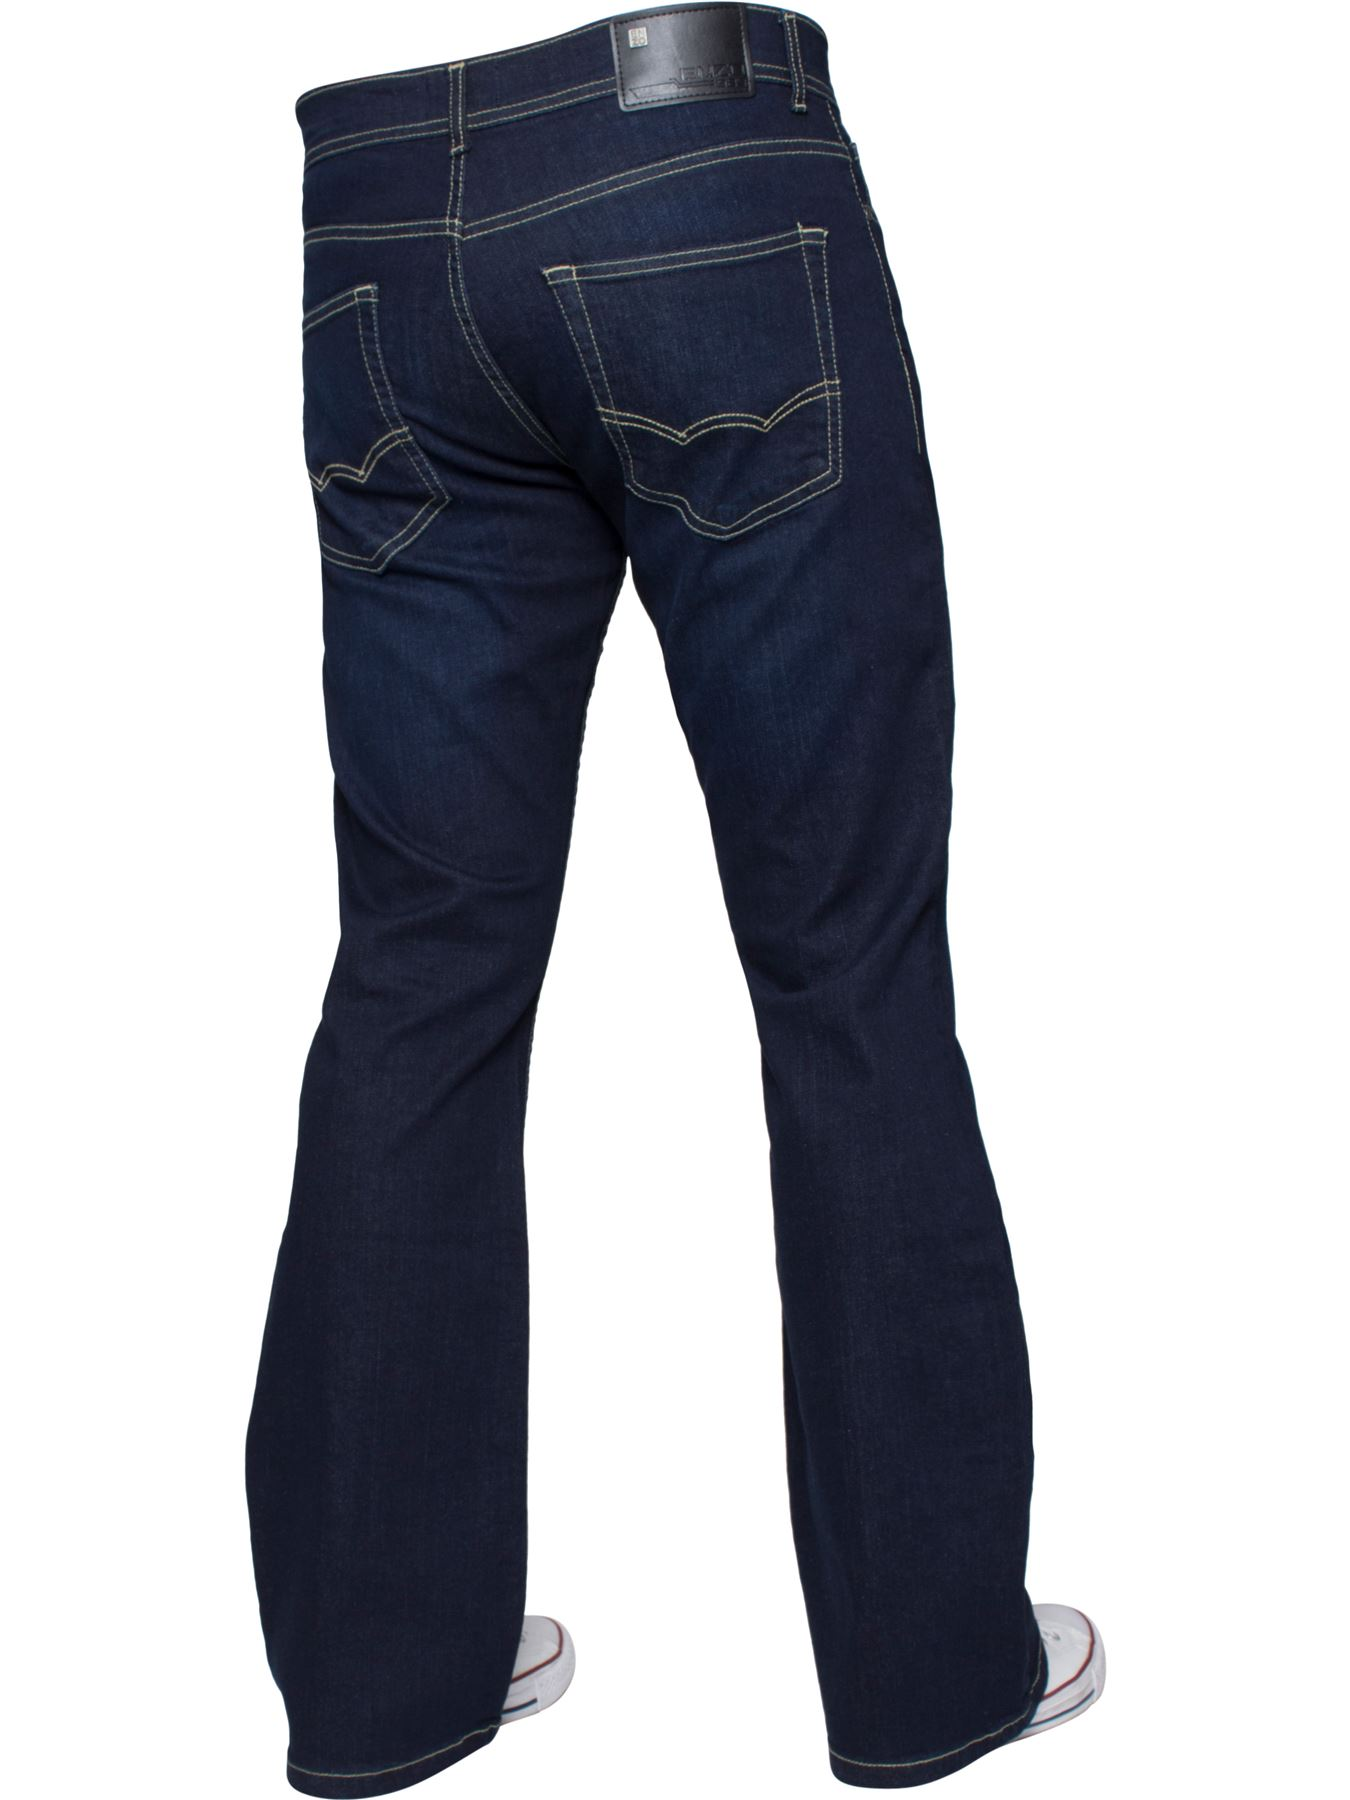 Kruze-Mens-Basic-Straight-Leg-Bootcut-Stretch-Jeans-Denim-Regular-Big-Tall-Waist thumbnail 56